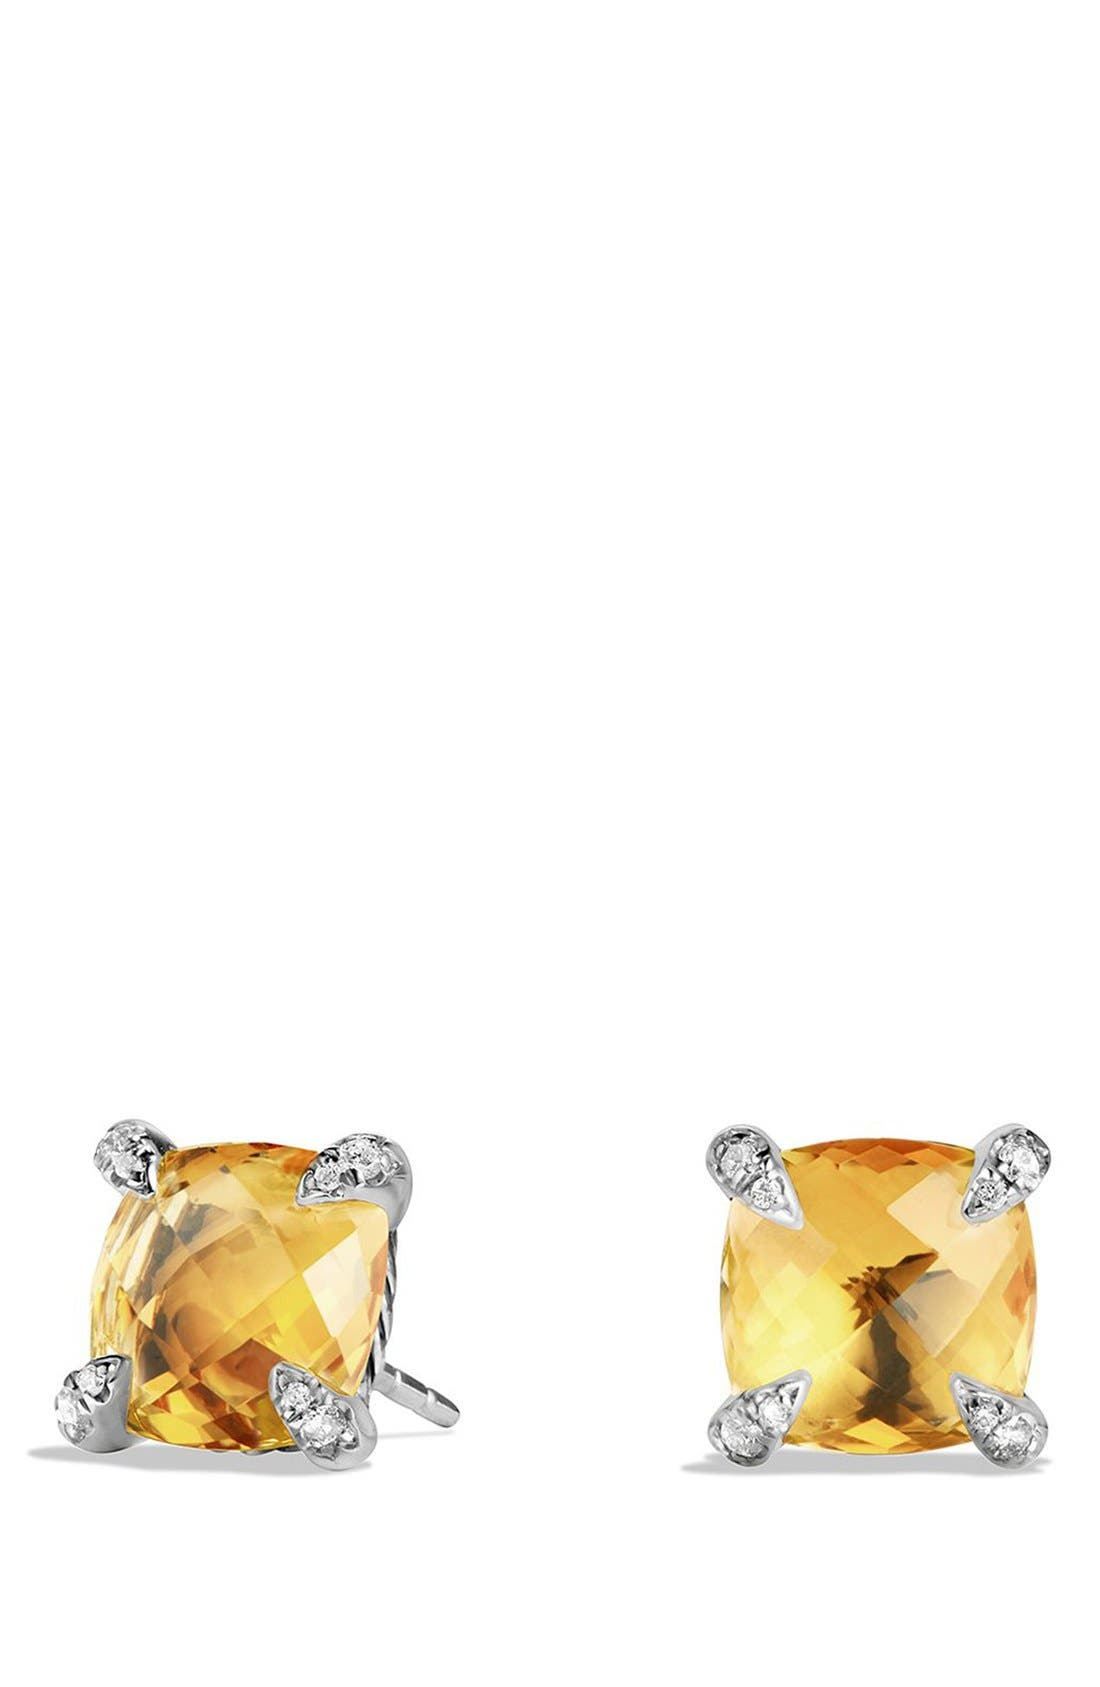 'Châtelaine' Earrings with Semiprecious Stones and Diamonds,                             Main thumbnail 1, color,                             SILVER/ CITRINE